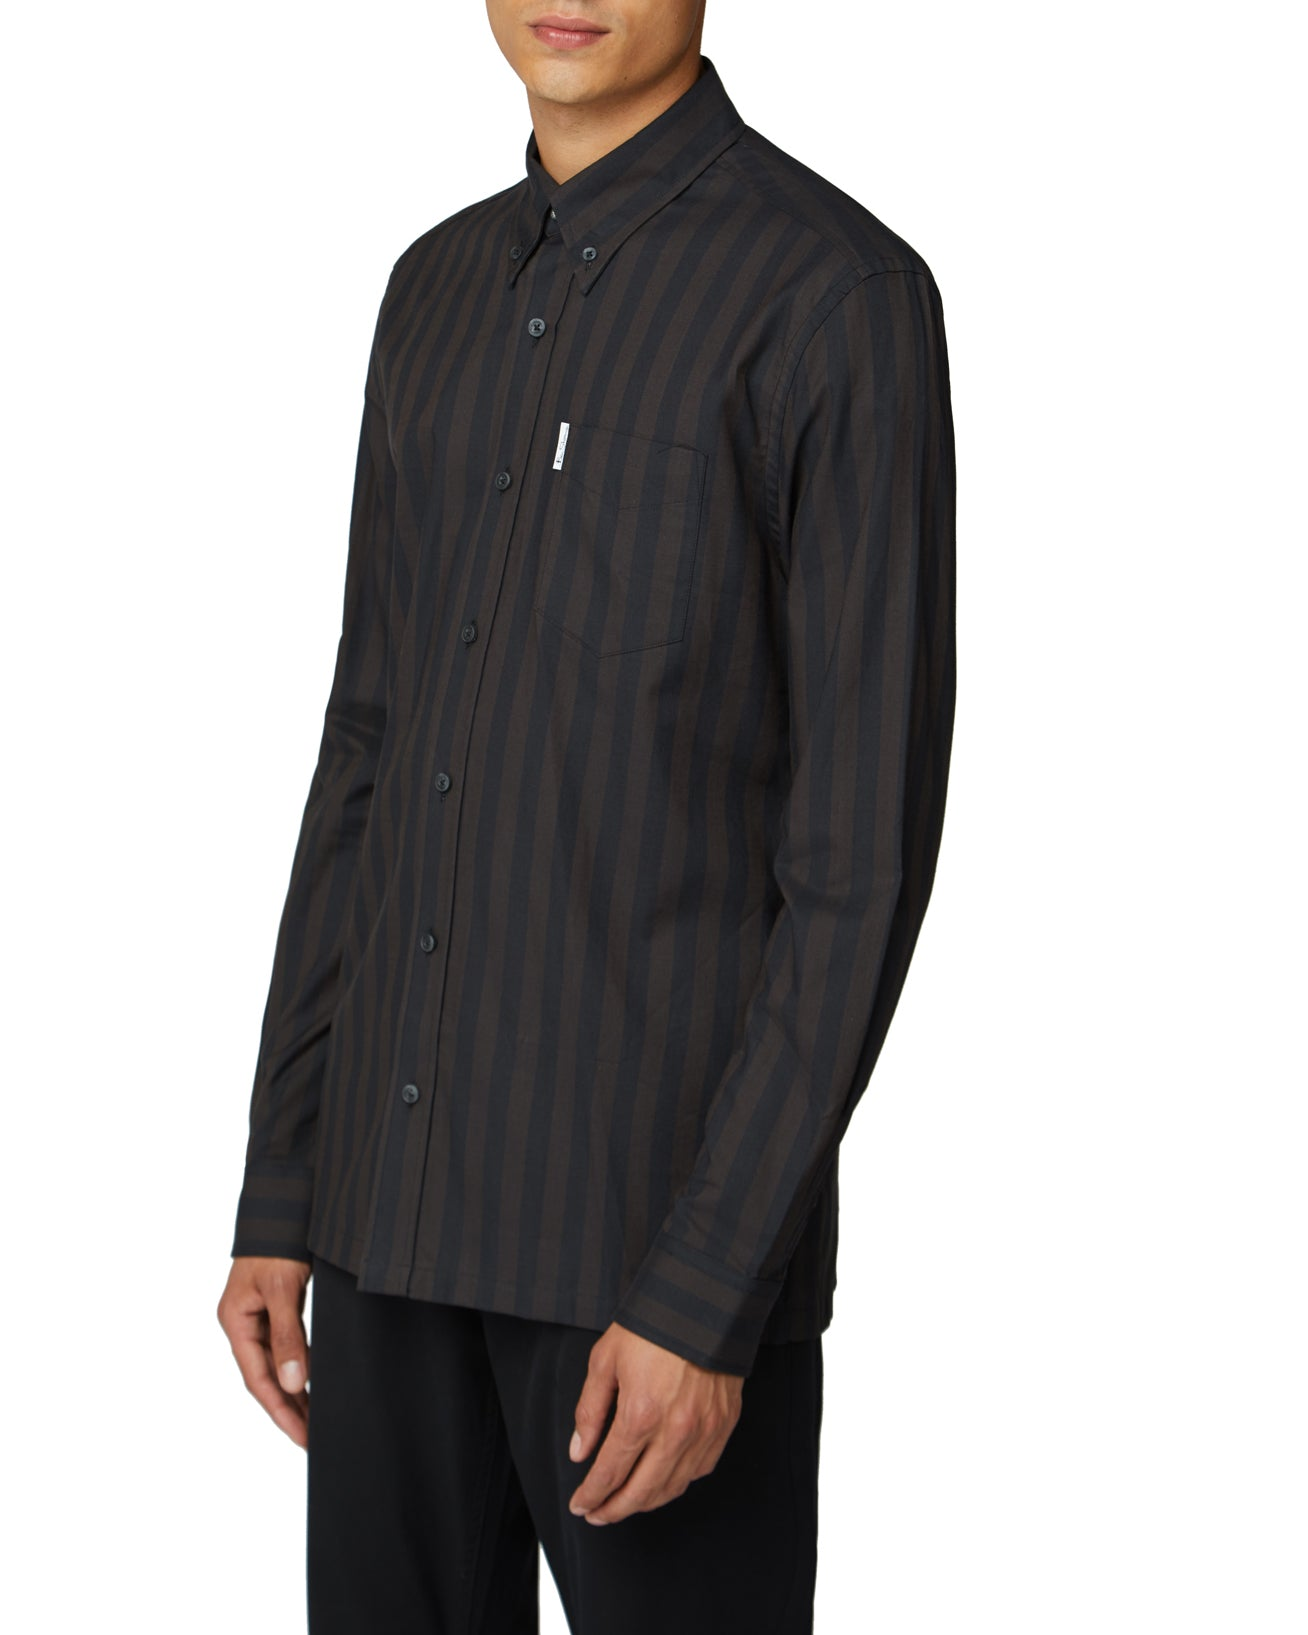 Long-Sleeve Archive Candy Stripe Oxford Shirt - Anthracite